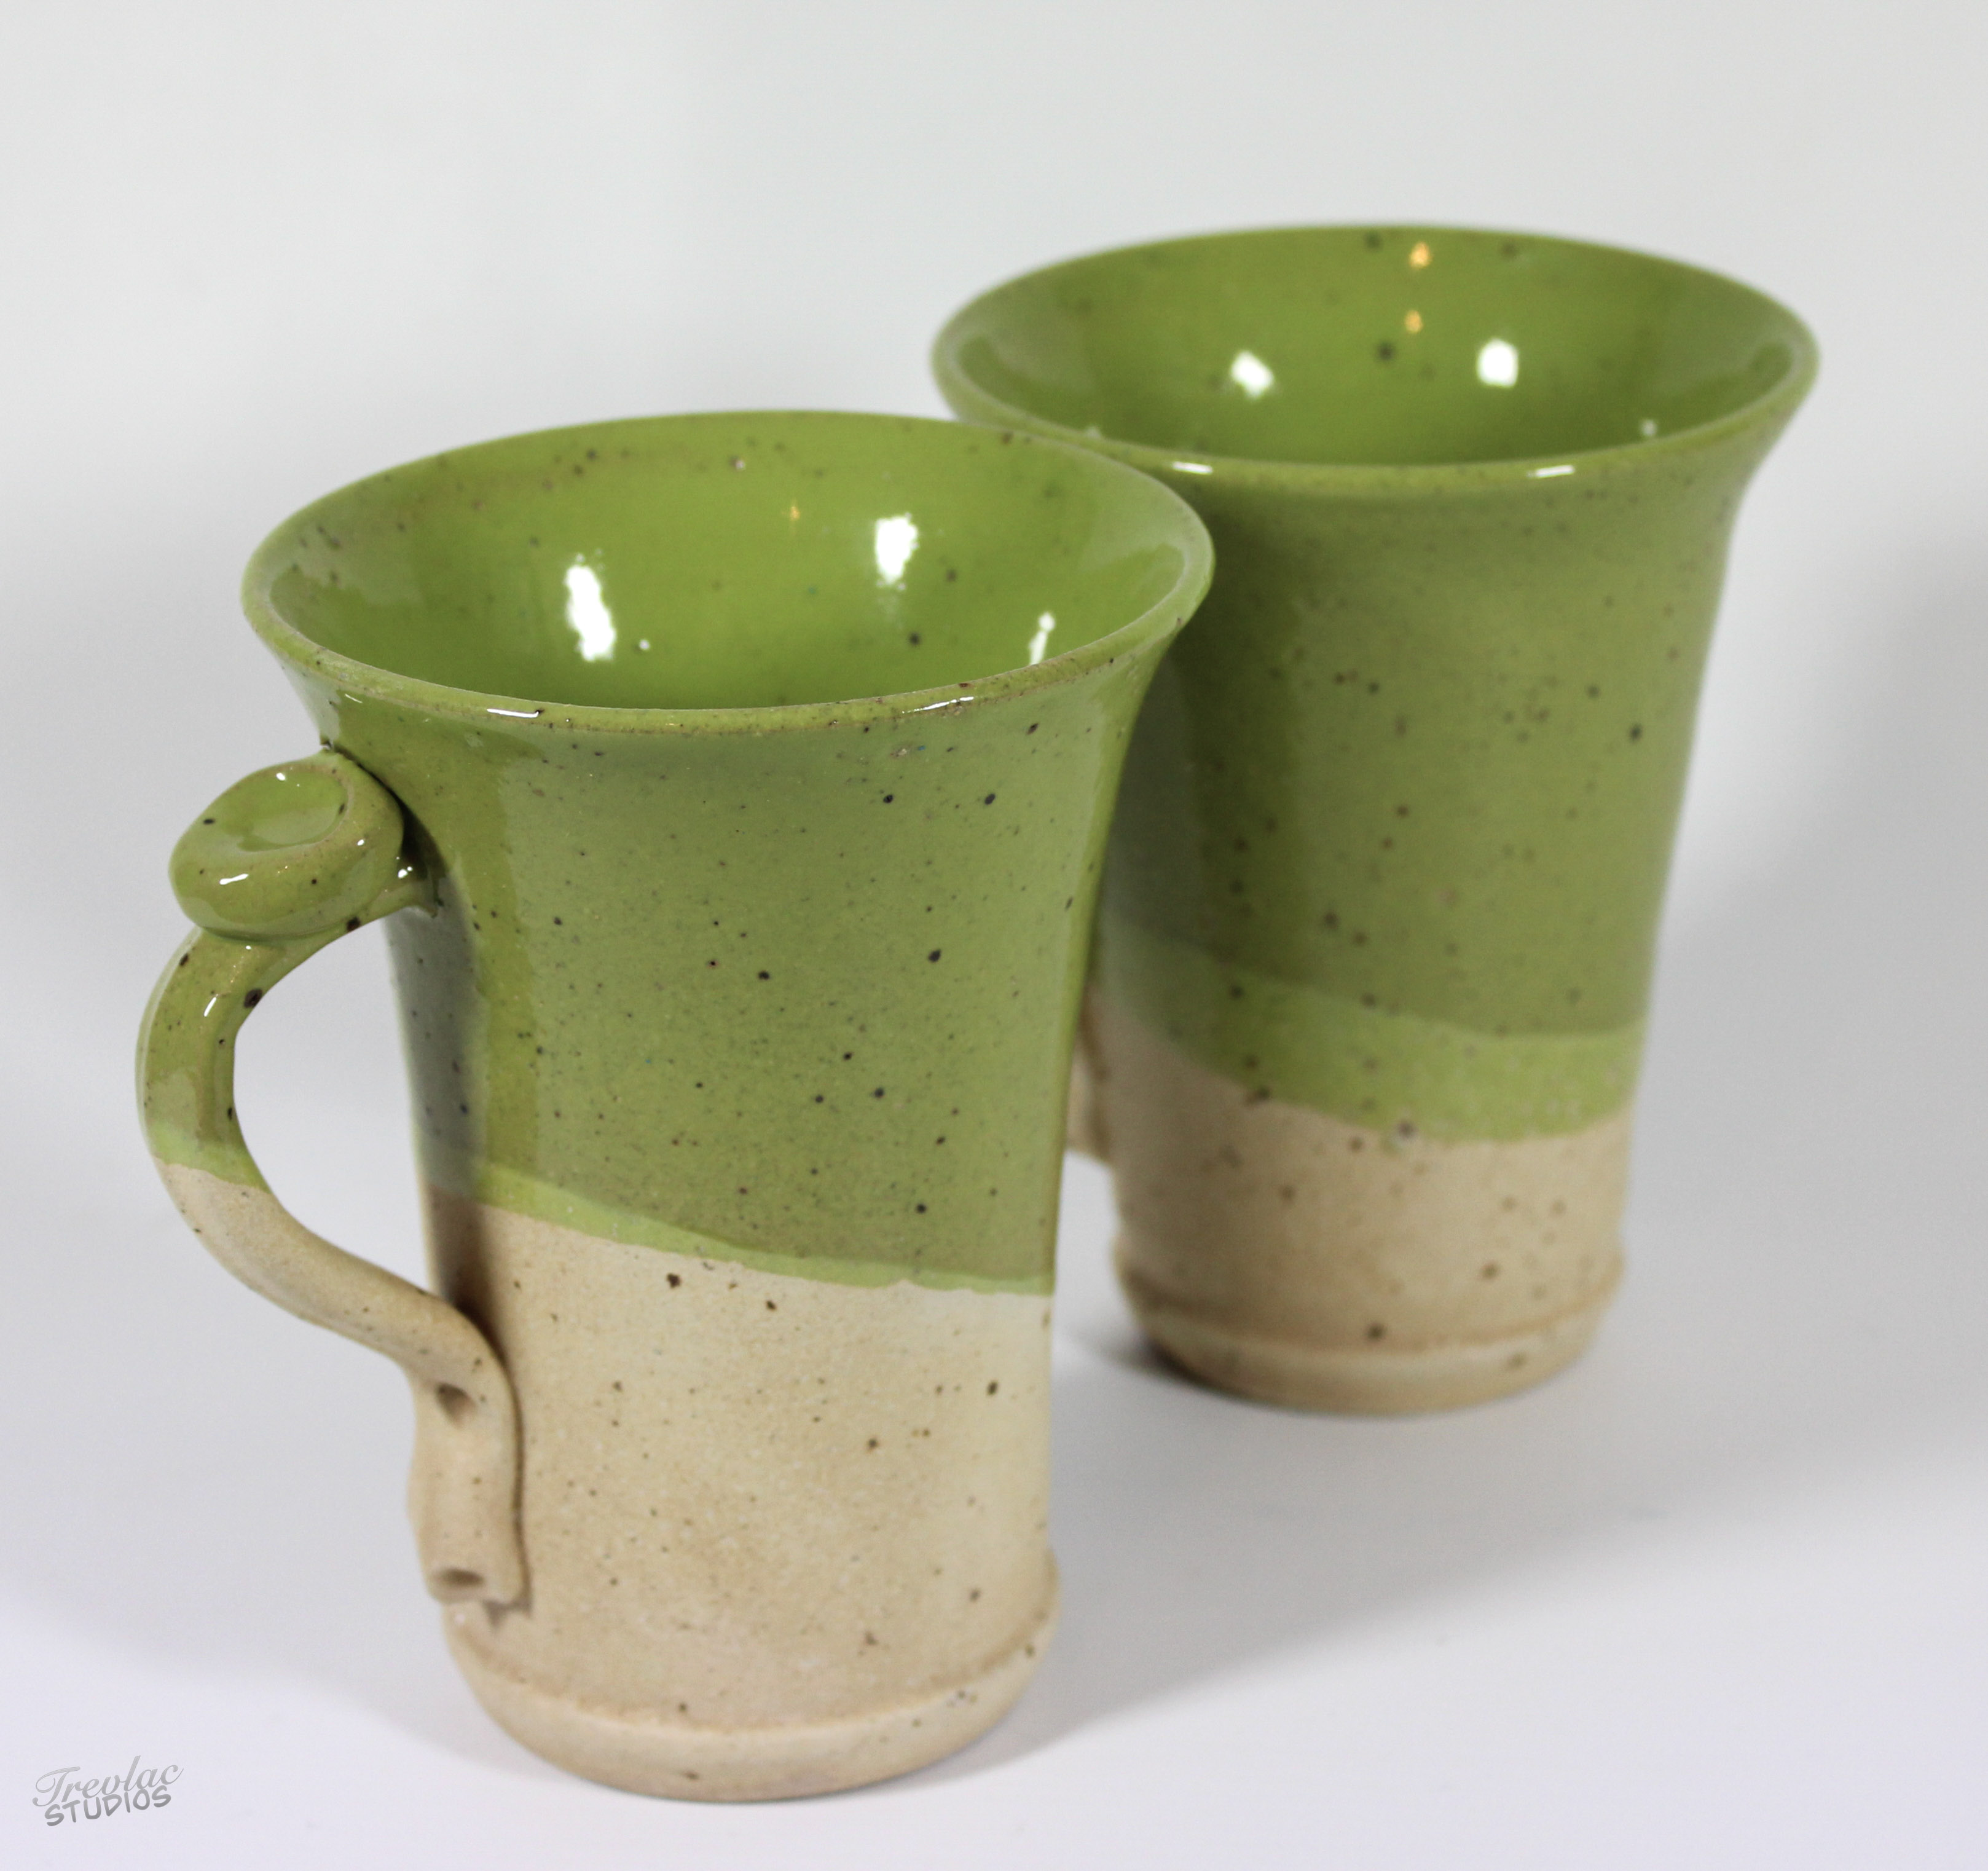 Peter White Matcha Mug Woburn Sands Clay The Great Pottery Throw Down